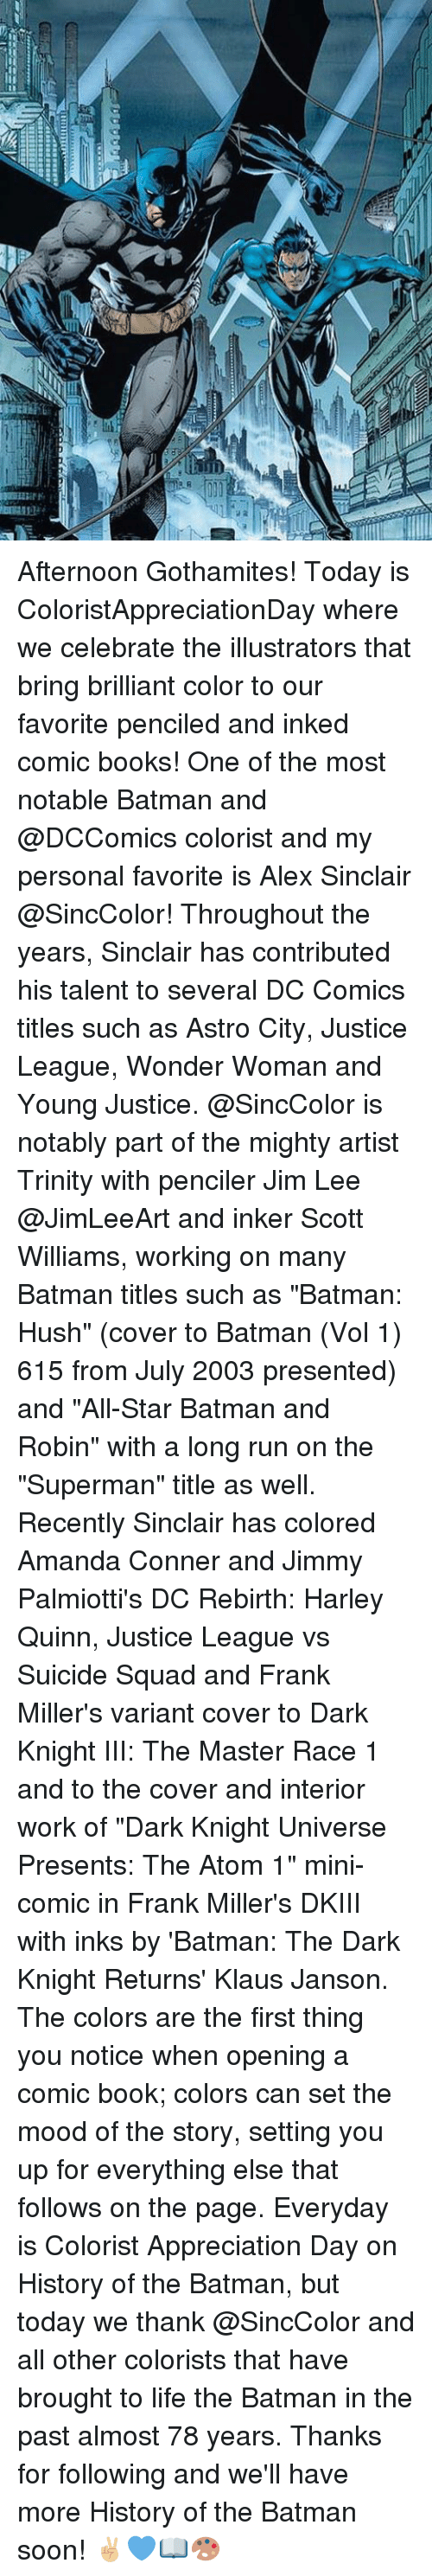 "All Star, Memes, and Suicide Squad: Afternoon Gothamites! Today is ColoristAppreciationDay where we celebrate the illustrators that bring brilliant color to our favorite penciled and inked comic books! One of the most notable Batman and @DCComics colorist and my personal favorite is Alex Sinclair @SincColor! Throughout the years, Sinclair has contributed his talent to several DC Comics titles such as Astro City, Justice League, Wonder Woman and Young Justice. @SincColor is notably part of the mighty artist Trinity with penciler Jim Lee @JimLeeArt and inker Scott Williams, working on many Batman titles such as ""Batman: Hush"" (cover to Batman (Vol 1) 615 from July 2003 presented) and ""All-Star Batman and Robin"" with a long run on the ""Superman"" title as well. Recently Sinclair has colored Amanda Conner and Jimmy Palmiotti's DC Rebirth: Harley Quinn, Justice League vs Suicide Squad and Frank Miller's variant cover to Dark Knight III: The Master Race 1 and to the cover and interior work of ""Dark Knight Universe Presents: The Atom 1"" mini-comic in Frank Miller's DKIII with inks by 'Batman: The Dark Knight Returns' Klaus Janson. The colors are the first thing you notice when opening a comic book; colors can set the mood of the story, setting you up for everything else that follows on the page. Everyday is Colorist Appreciation Day on History of the Batman, but today we thank @SincColor and all other colorists that have brought to life the Batman in the past almost 78 years. Thanks for following and we'll have more History of the Batman soon! ✌🏼️💙📖🎨"